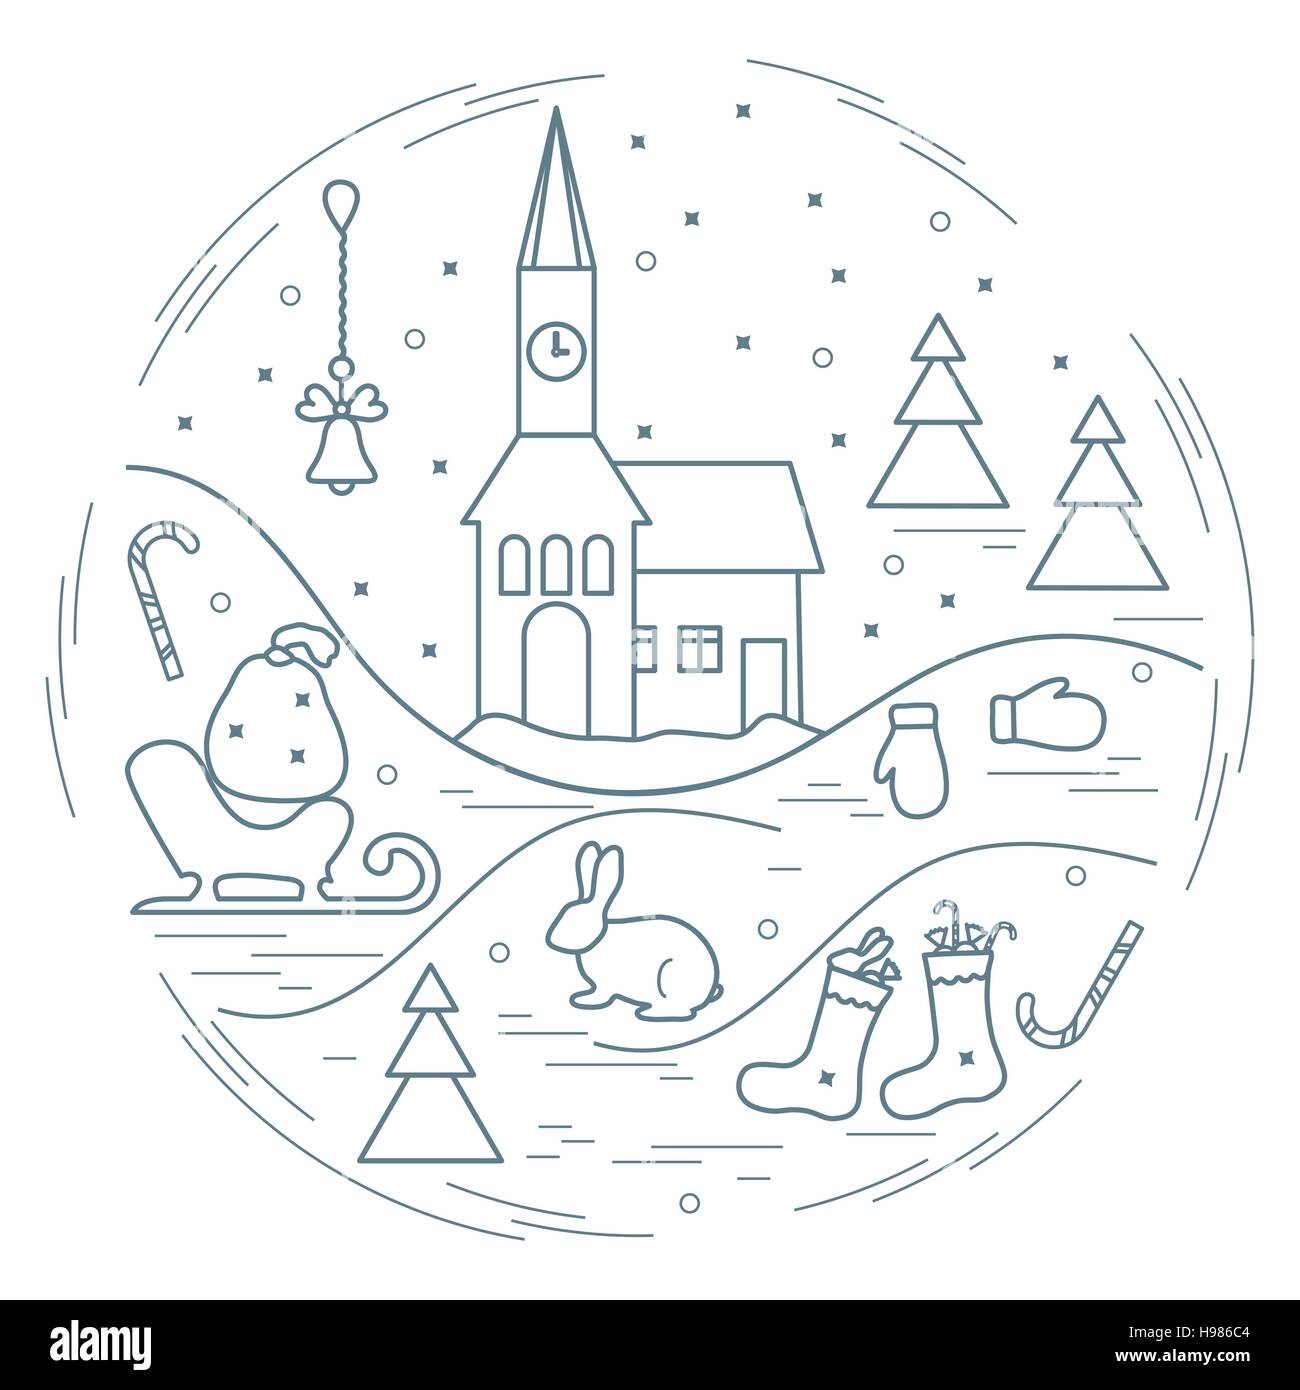 Vector illustration of different new year and christmas symbols arranged in a circle. Winter elements made in line - Stock Image